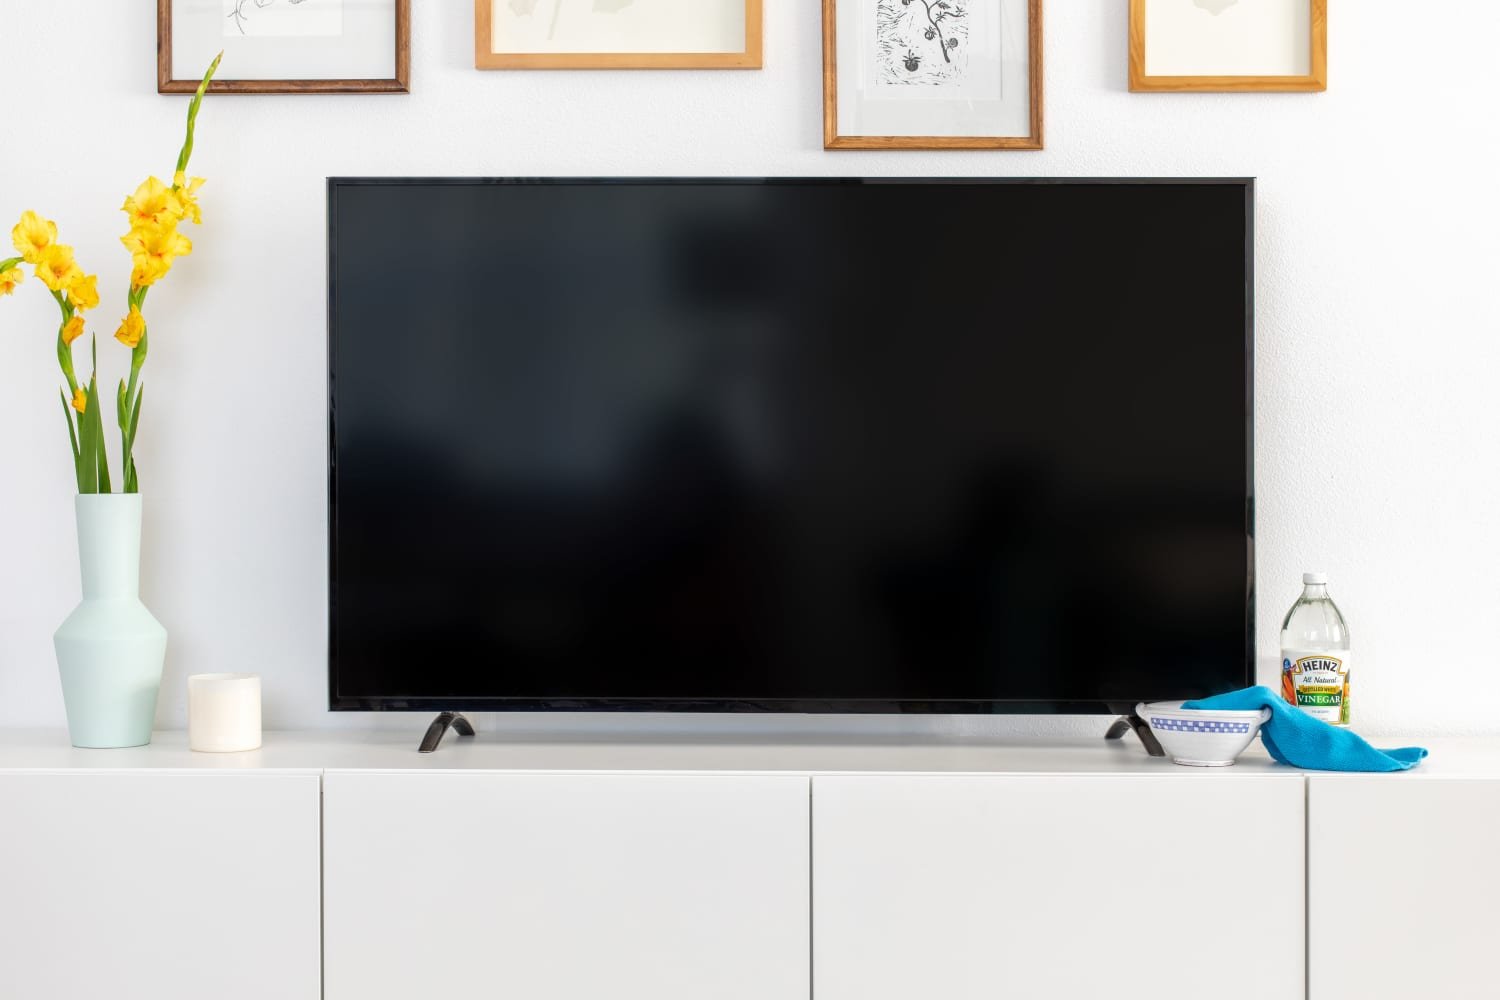 How To Clean Your TV Using Things You Already Have on Hand